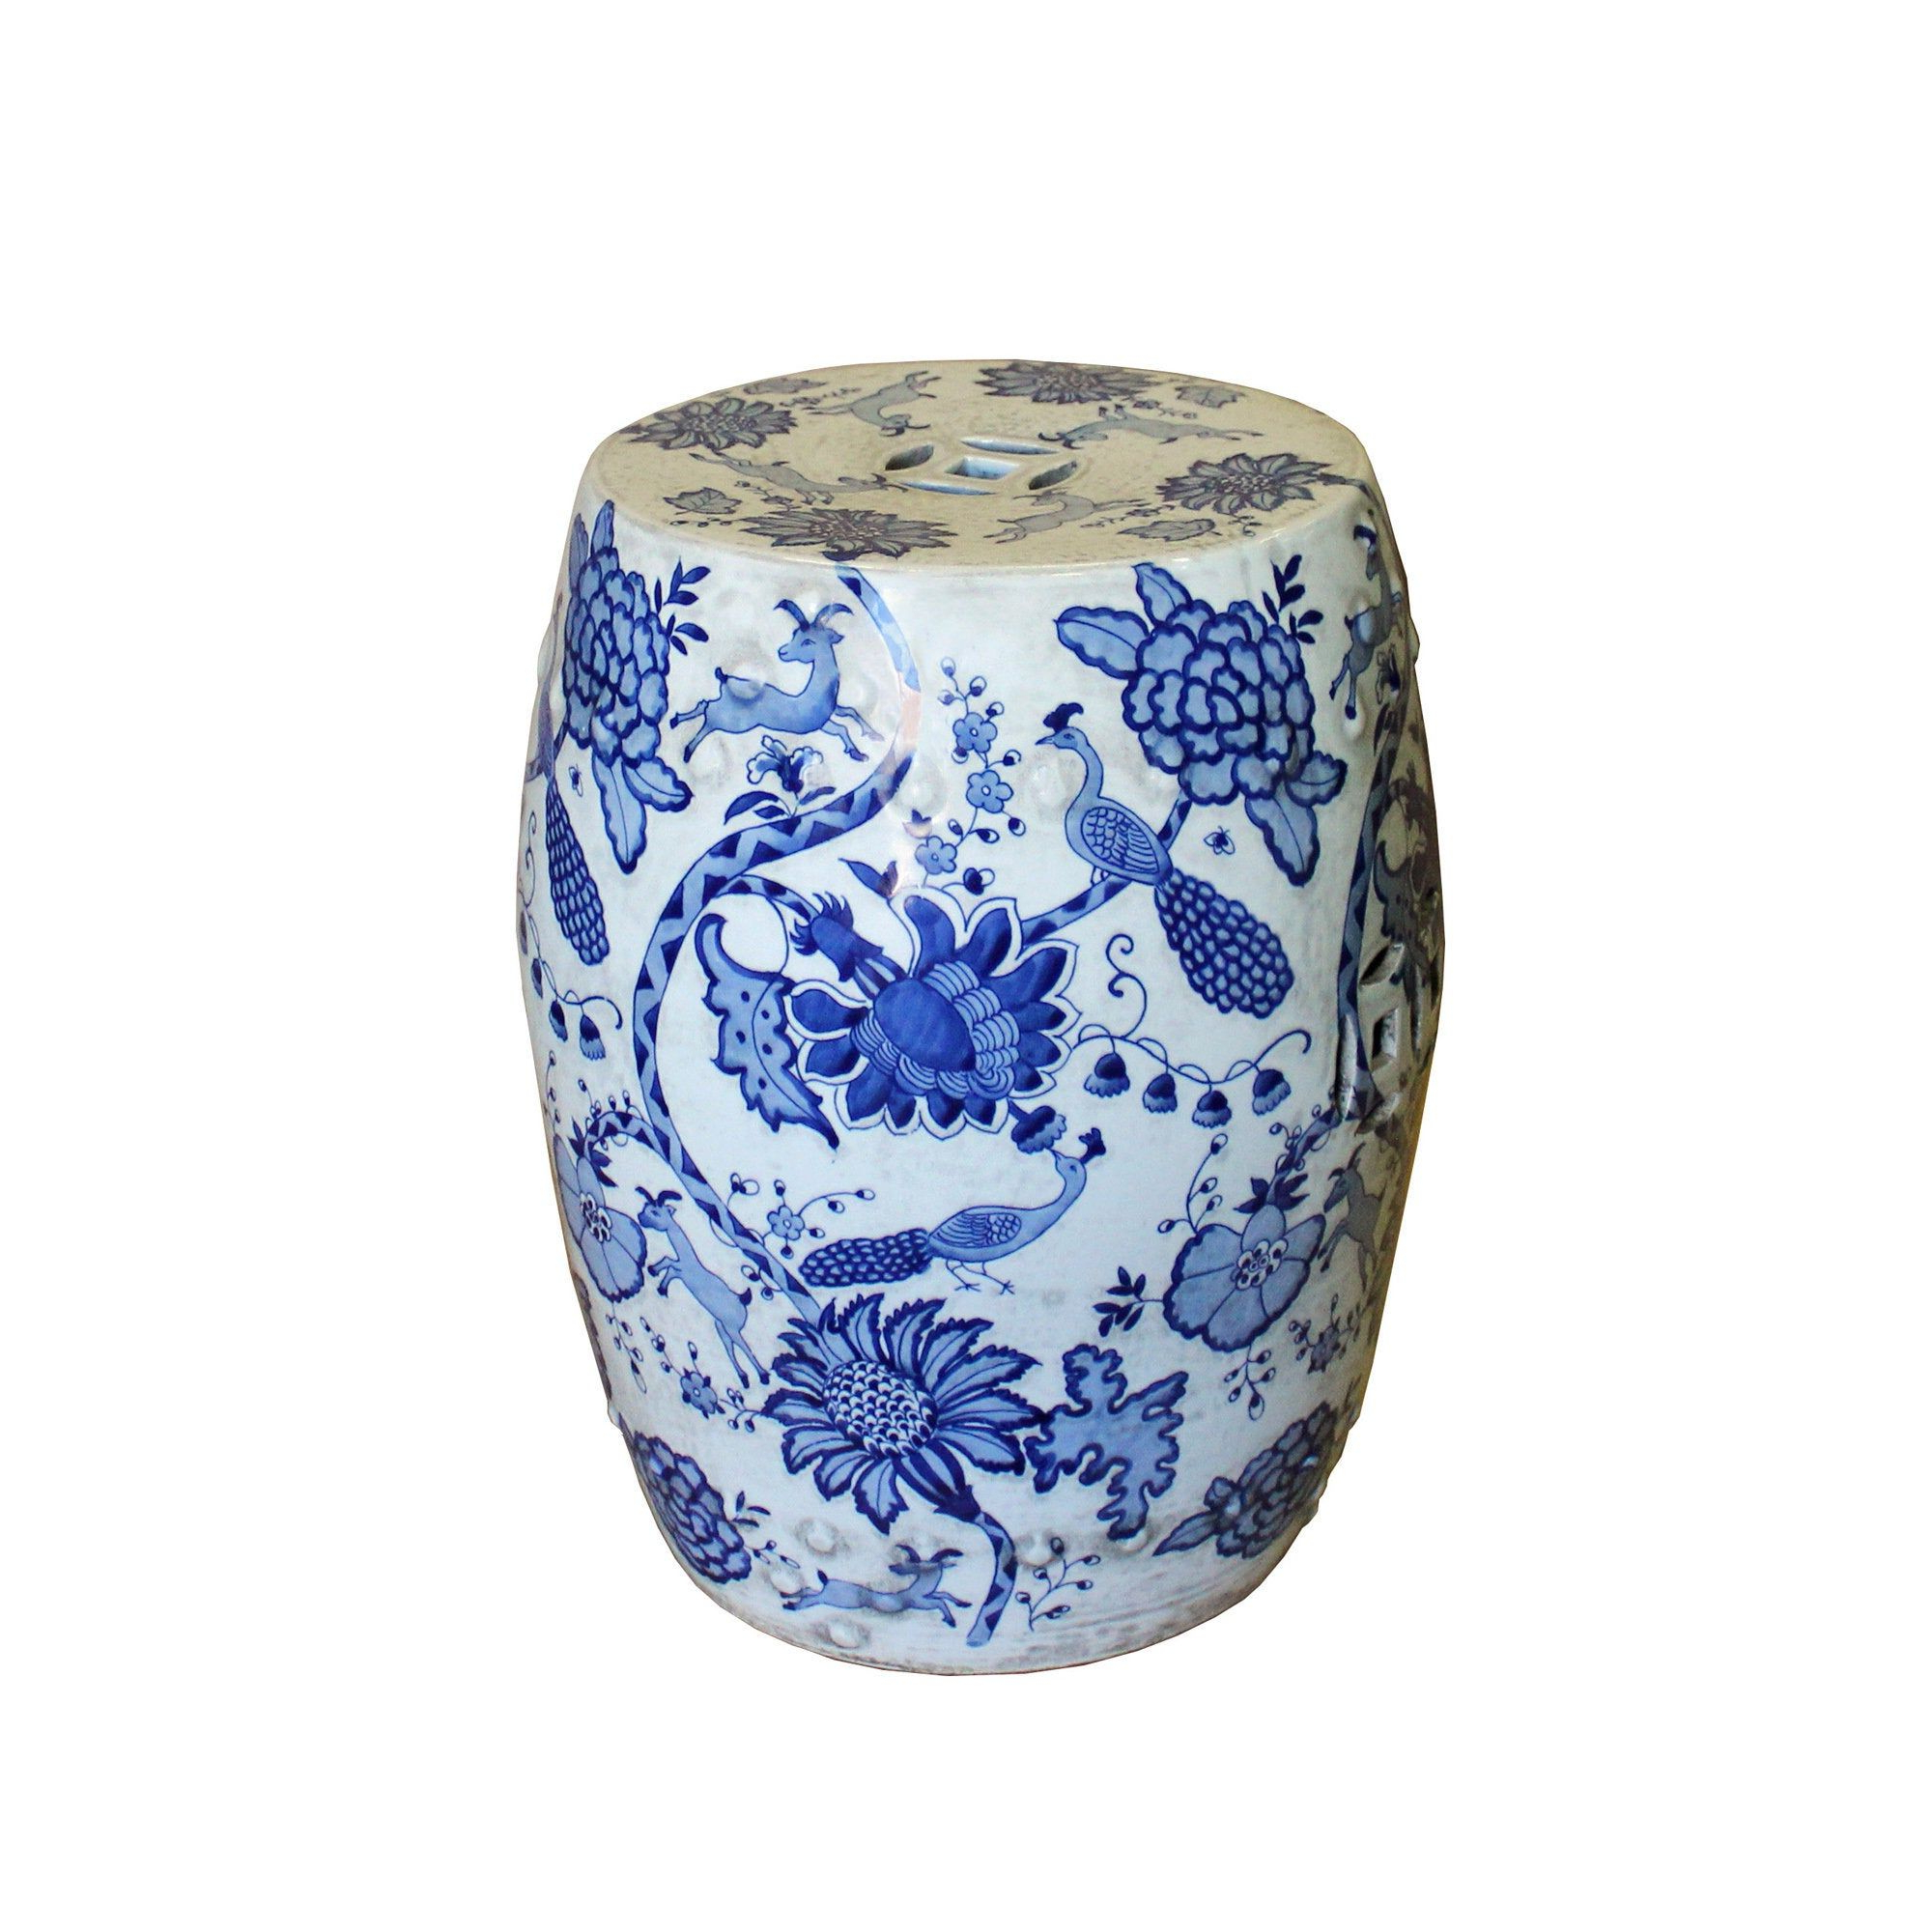 Popular Maci Tropical Birds Garden Stools Pertaining To Chinese Blue & White Porcelain Round Flower Bird Stool (View 3 of 30)